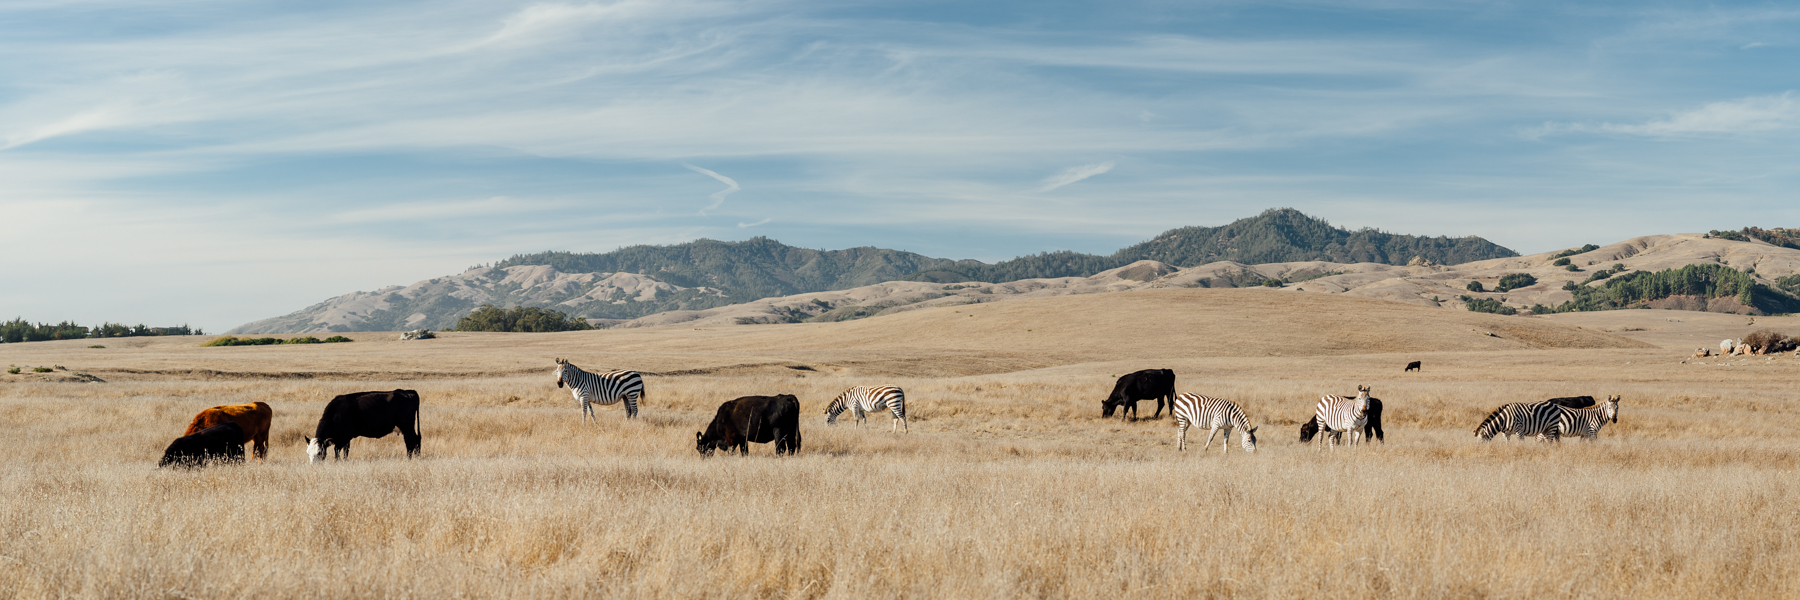 California Pastures ||  Panoramic stitch of zebras and cows in their natural habitat near Hearst Castle along Highway 1. ©Merima Helic